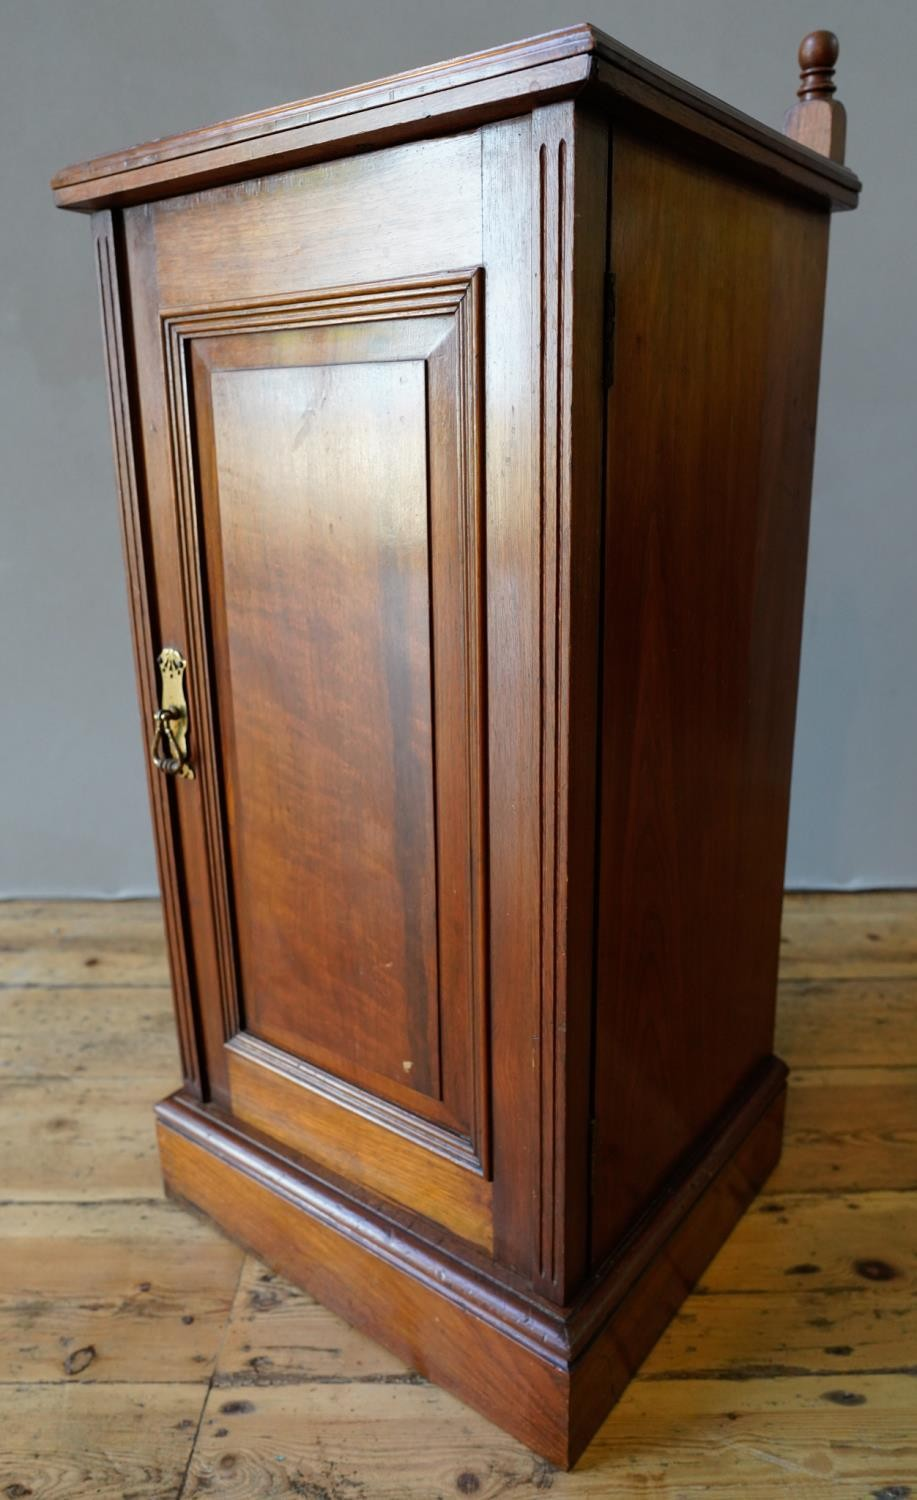 EDWARDIAN MAHOGANY POT CUPBOARD WITH SINGLE PANELLED DOOR AND SERPENTINE GALLERY BACK (39.5cm wide,8